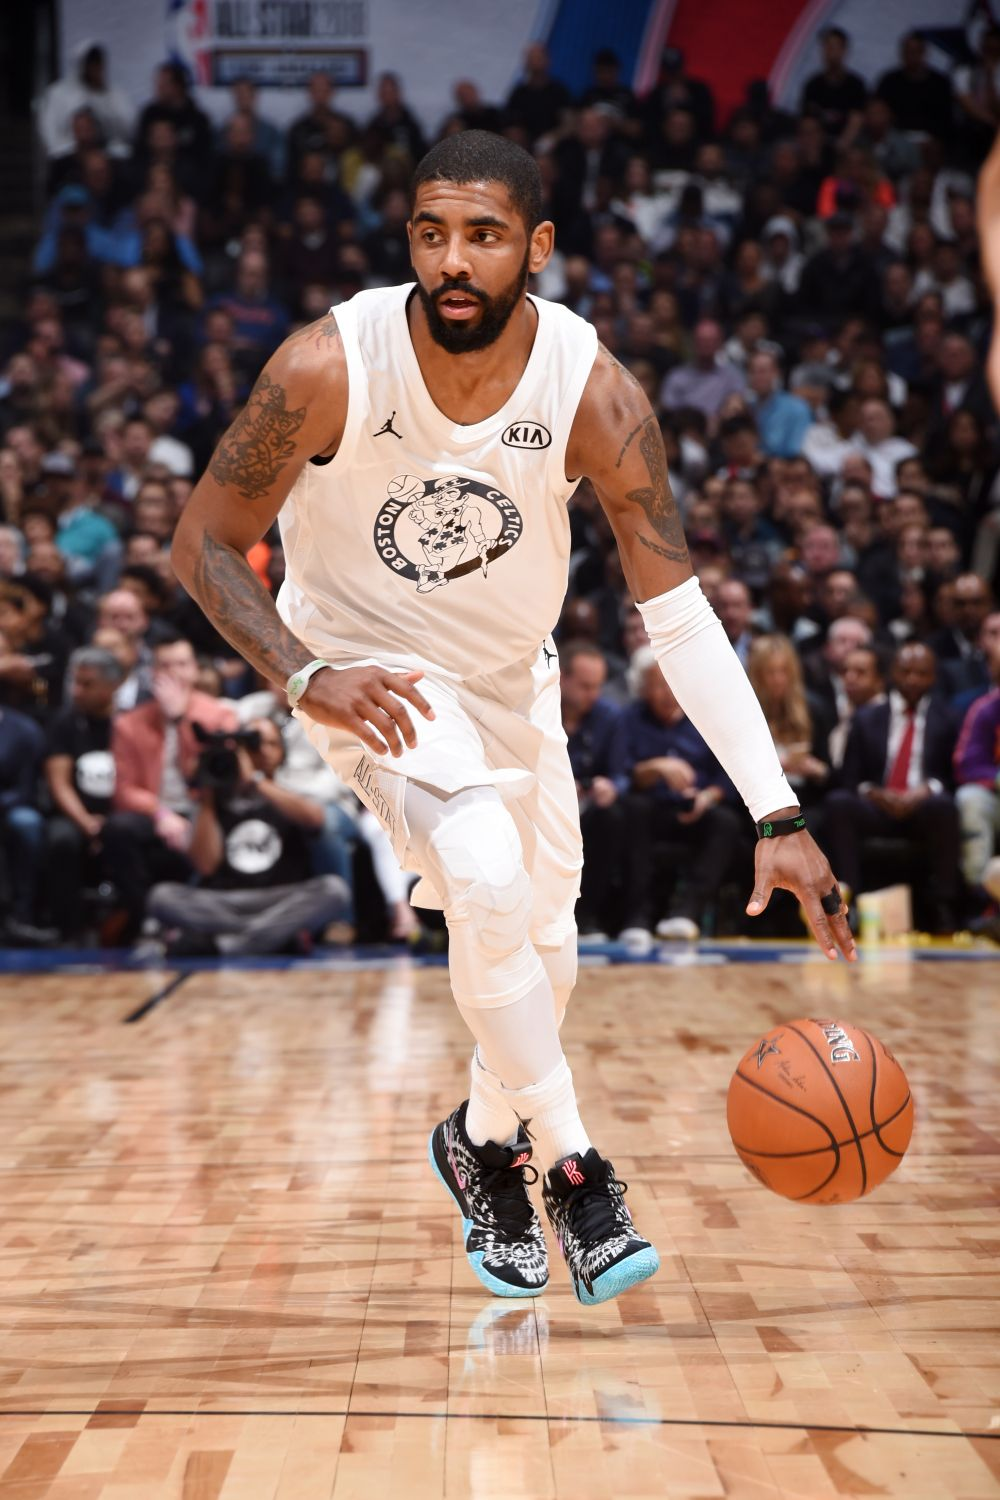 Kyrie Irving debuts new Nike Kyrie 4 'All-Star' sneaker starting for Team  LeBron Sunday